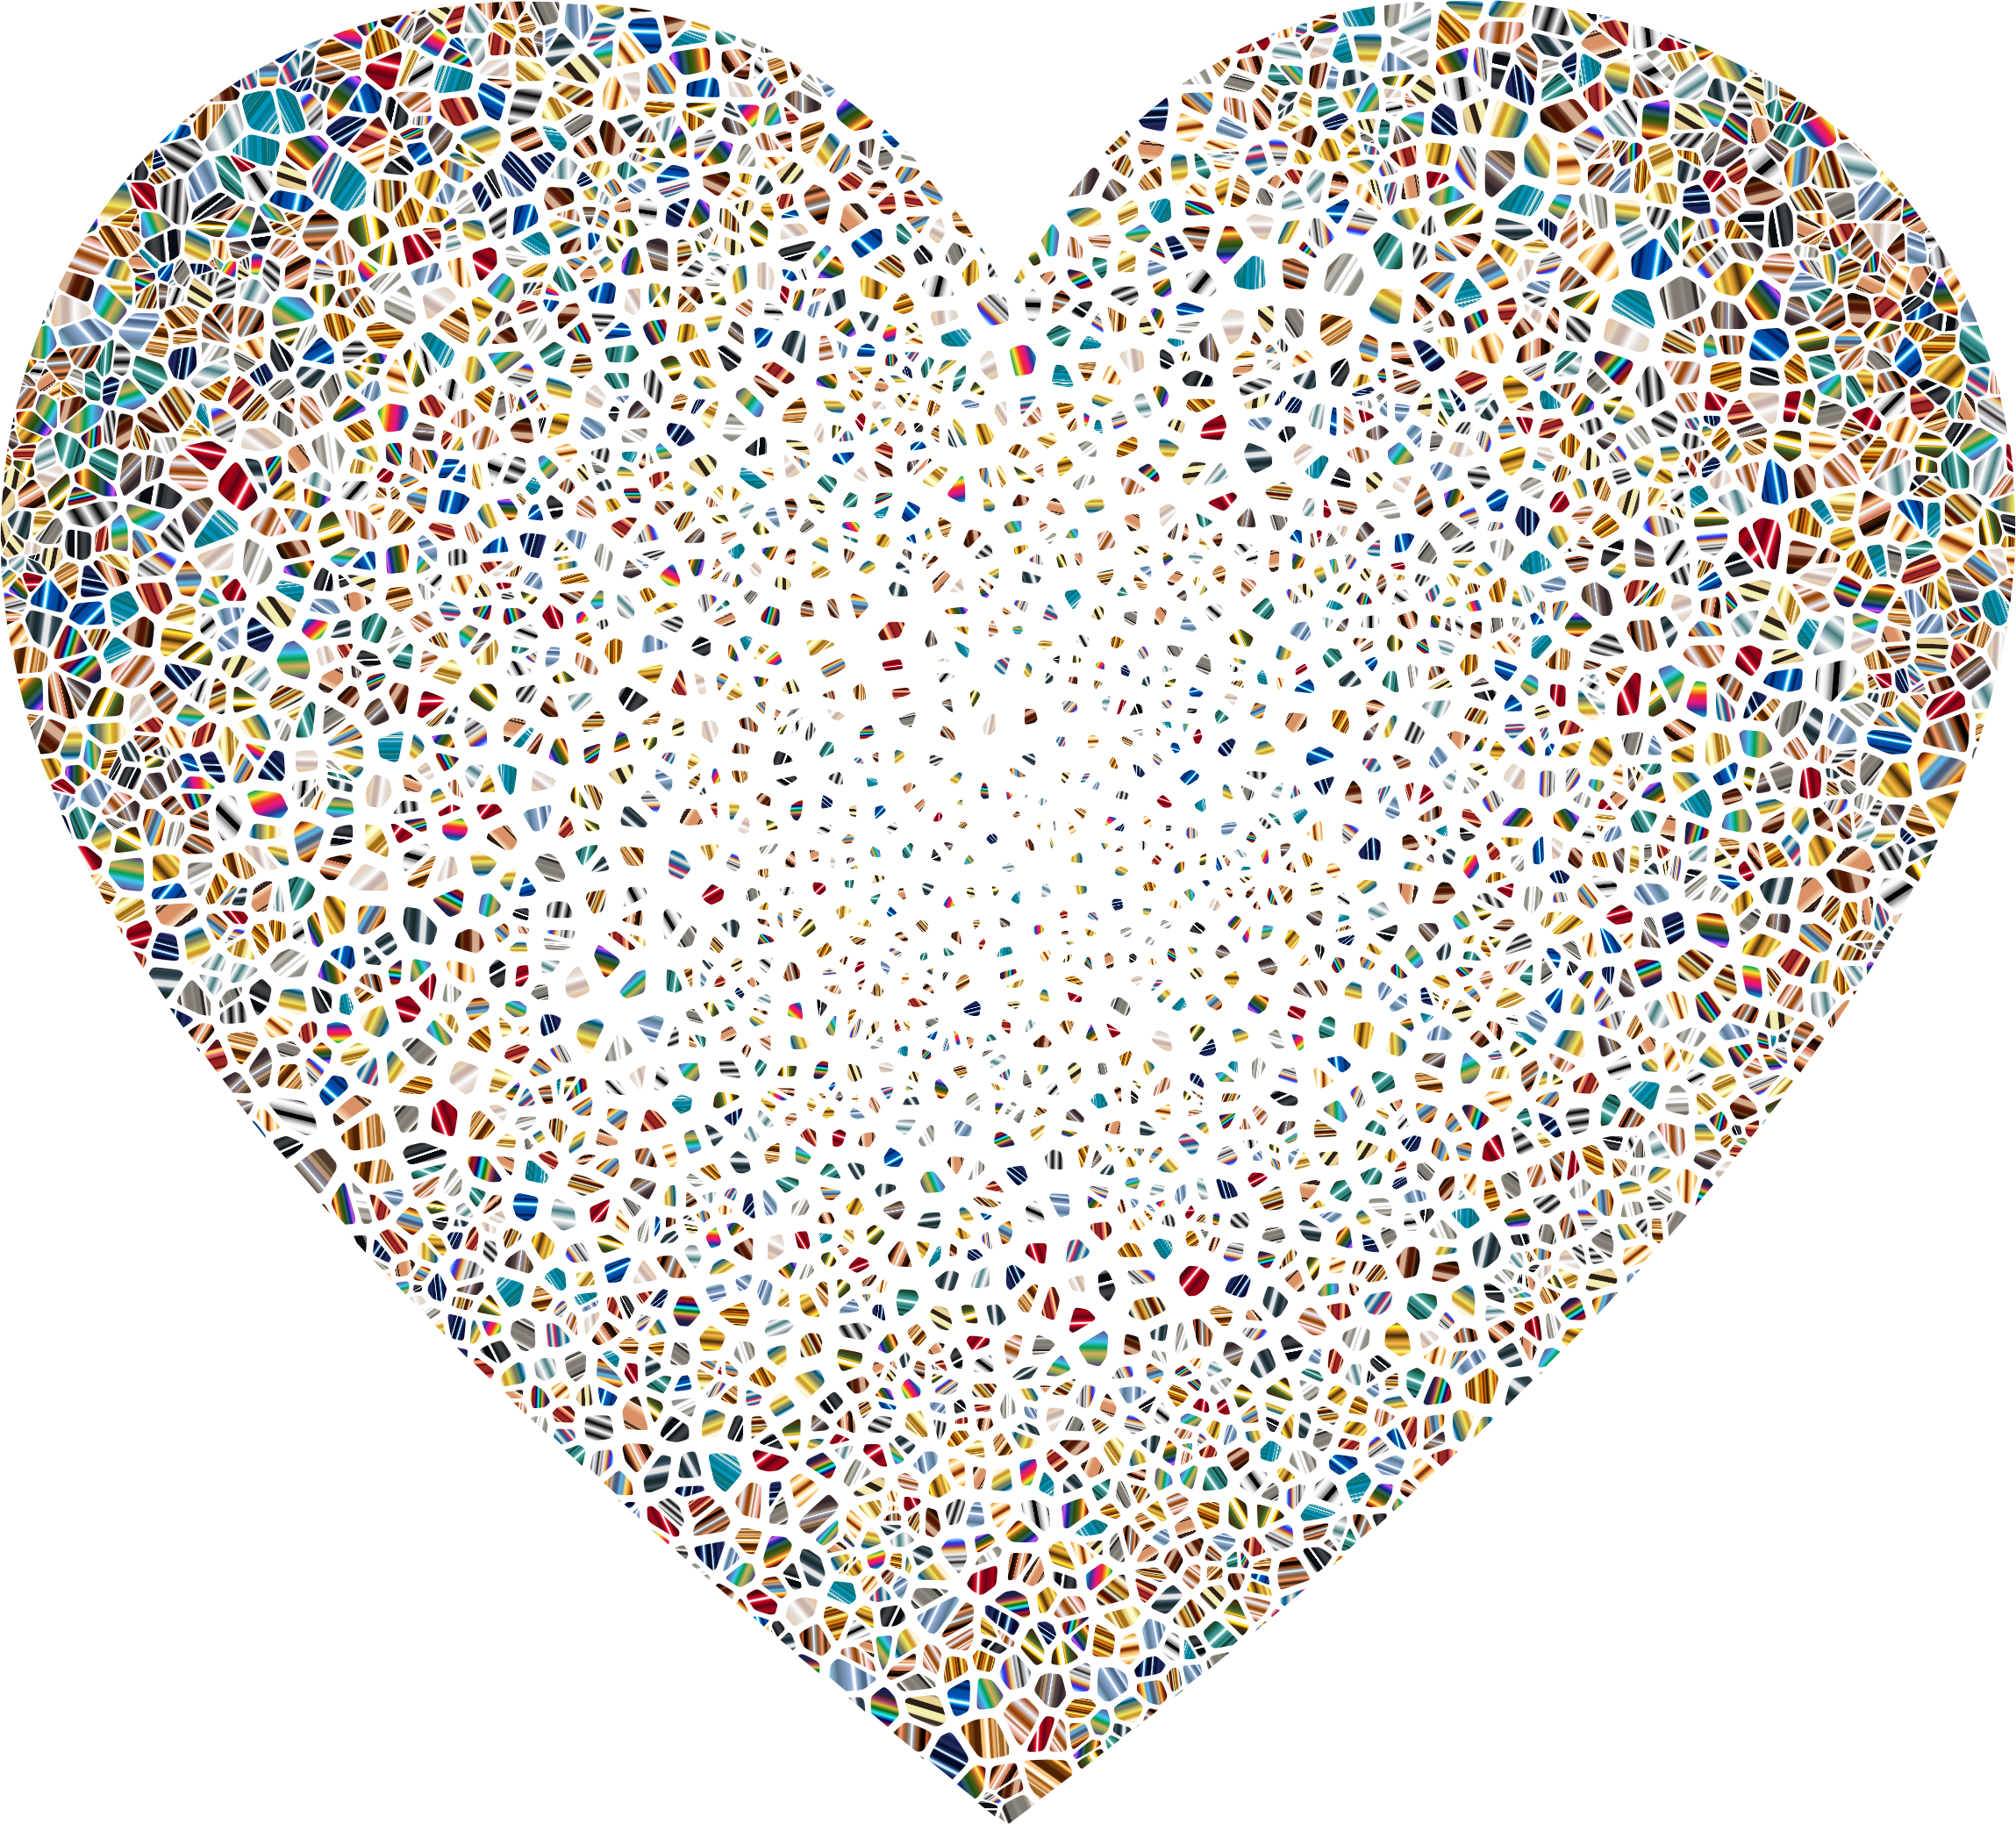 Heart background clipart banner transparent stock Clipart - Psychedelic Shattered Tiled Heart No Background banner transparent stock